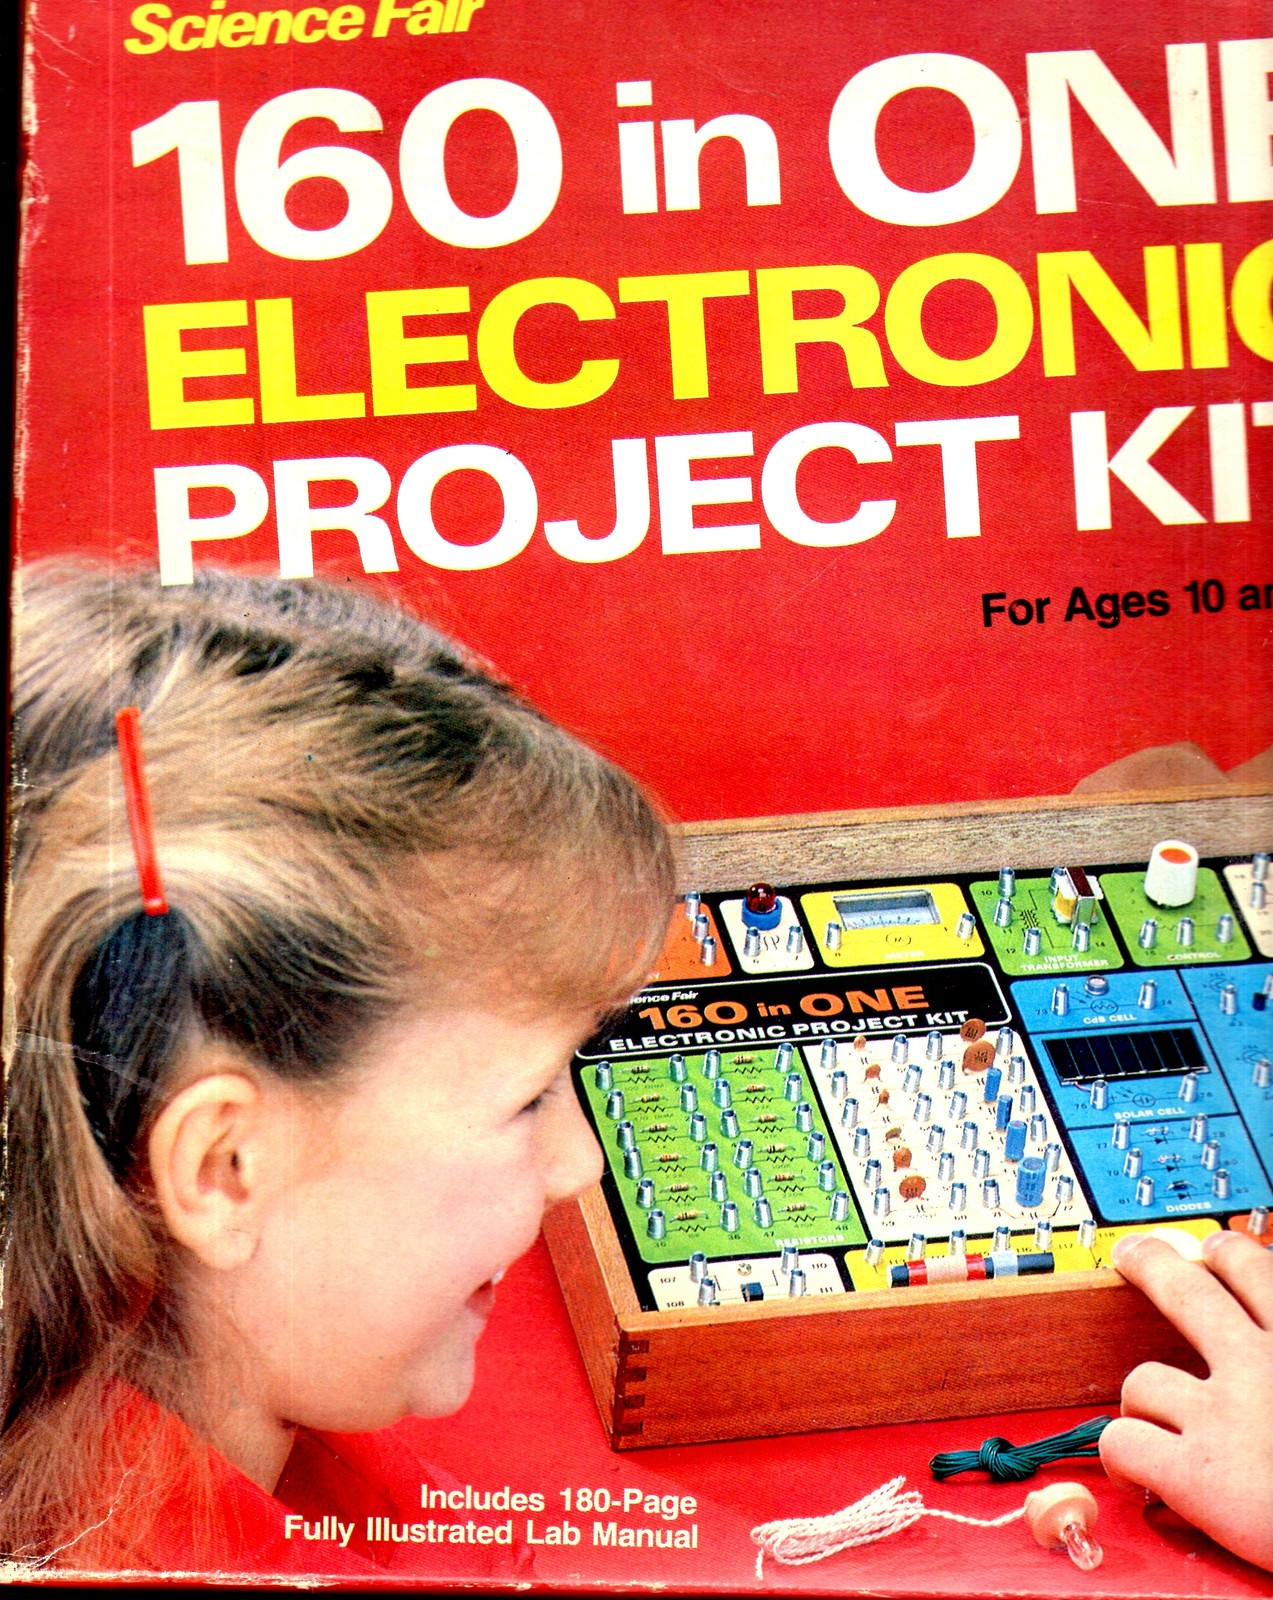 Science Fair 160 in One Electronic Project Kit